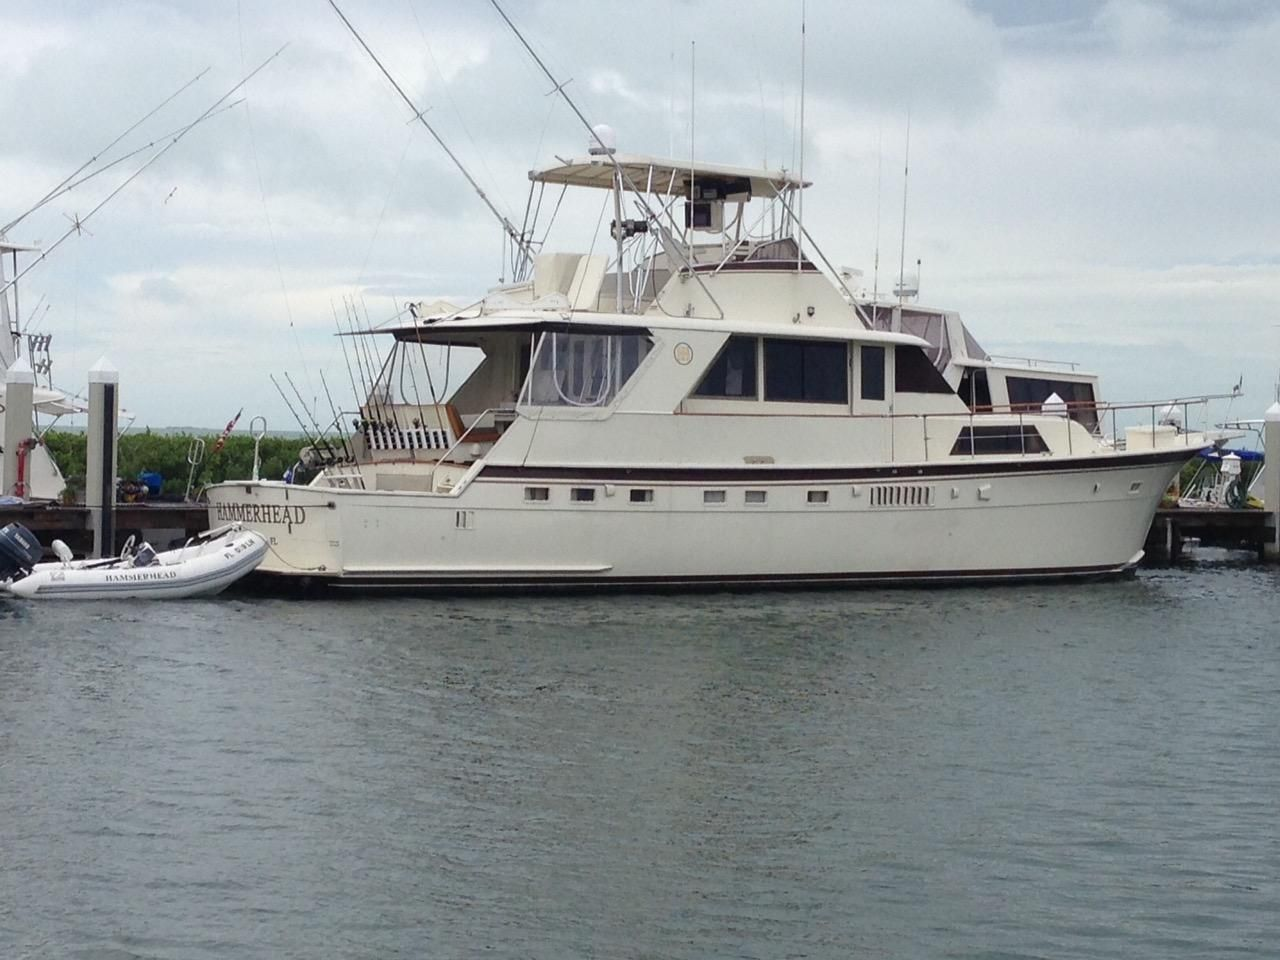 1975 hatteras yacht fisherman power boat for sale www for Hatteras motor yacht for sale